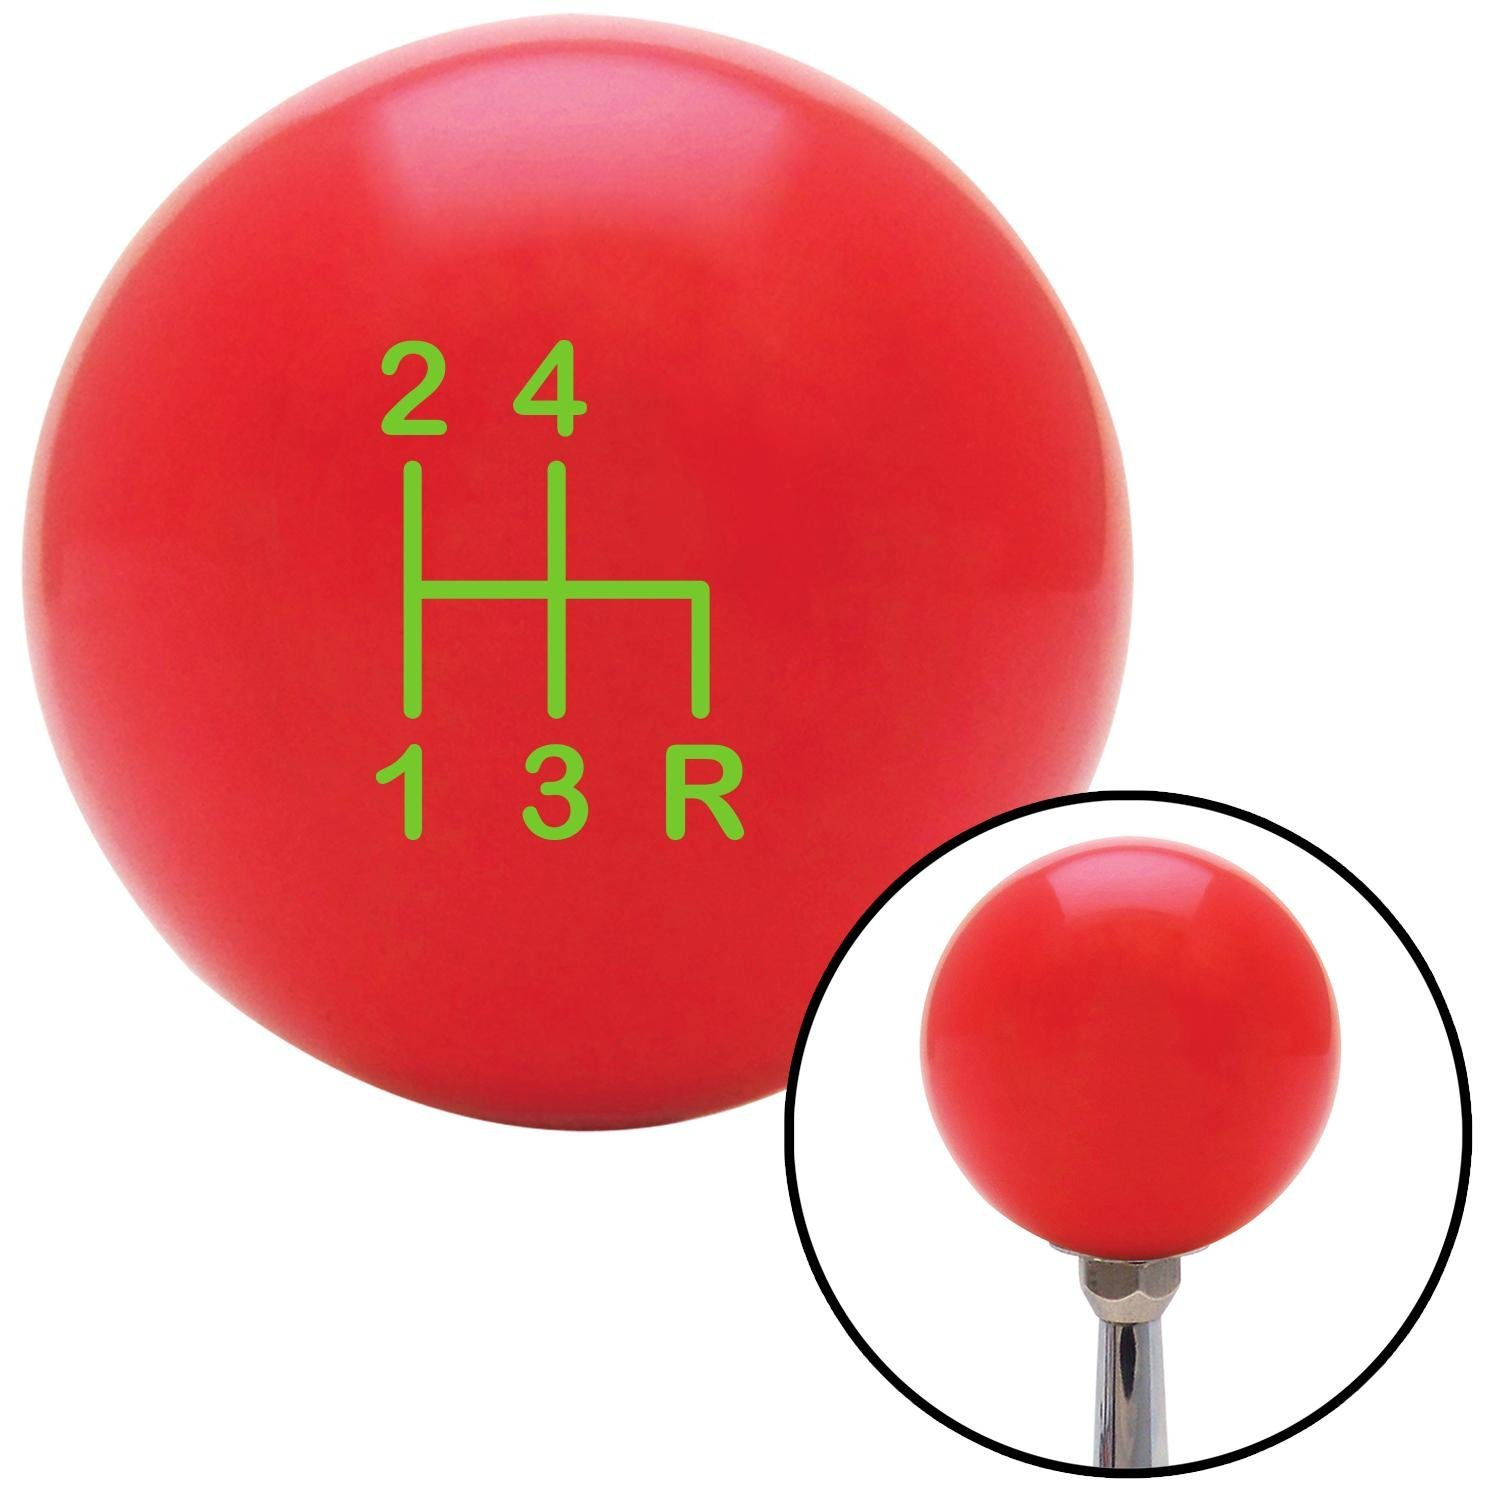 American Shifter 99998 Red Shift Knob with M16 x 1.5 Insert Green Shift Pattern 1n